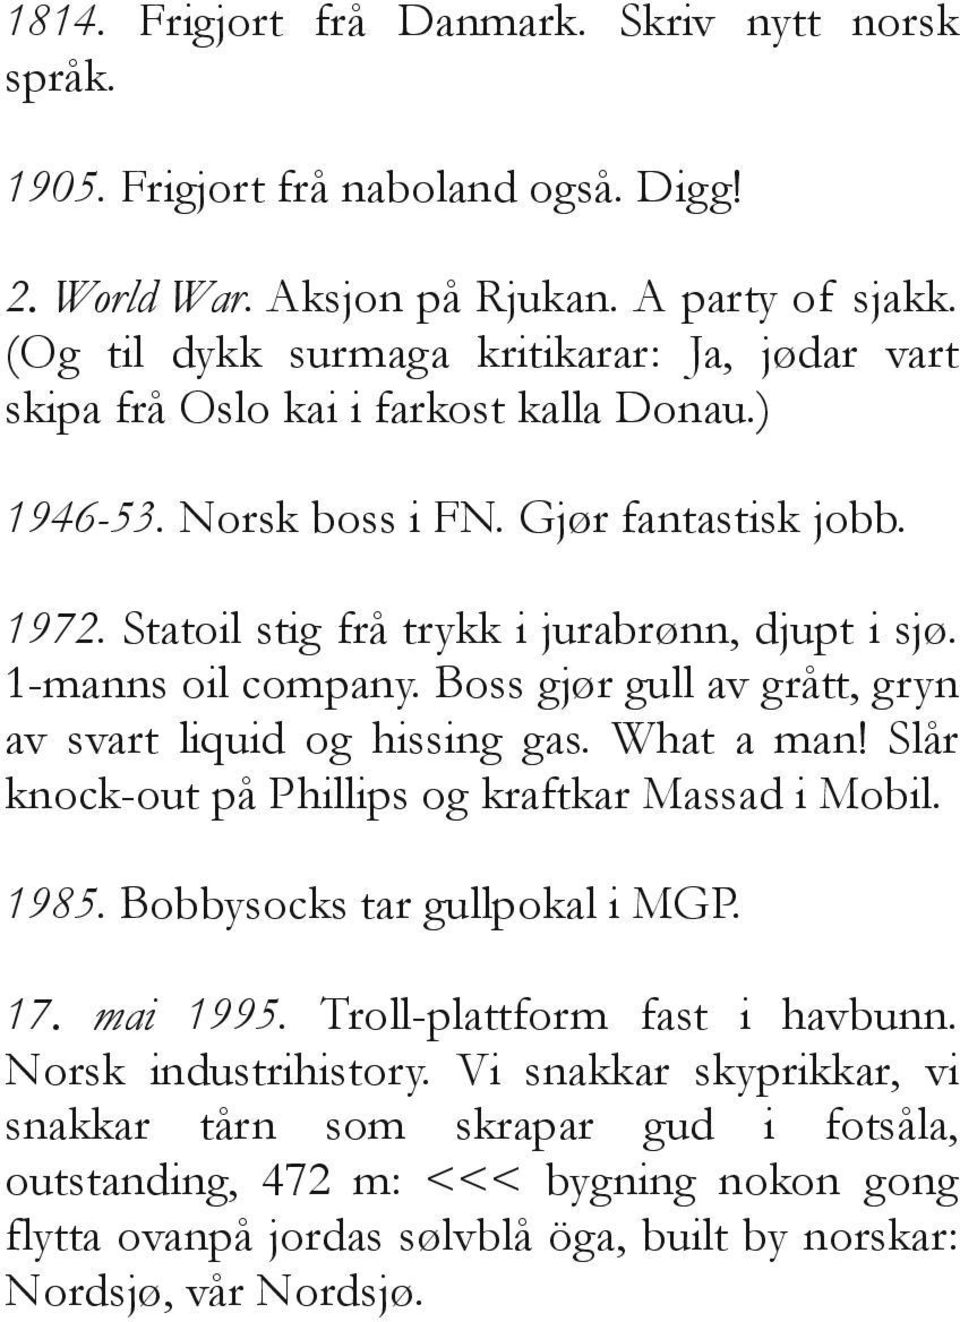 1-manns oil company. Boss gjør gull av grått, gryn av svart liquid og hissing gas. What a man! Slår knock-out på Phillips og kraftkar Massad i Mobil. 1985. Bobbysocks tar gullpokal i MGP. 17.